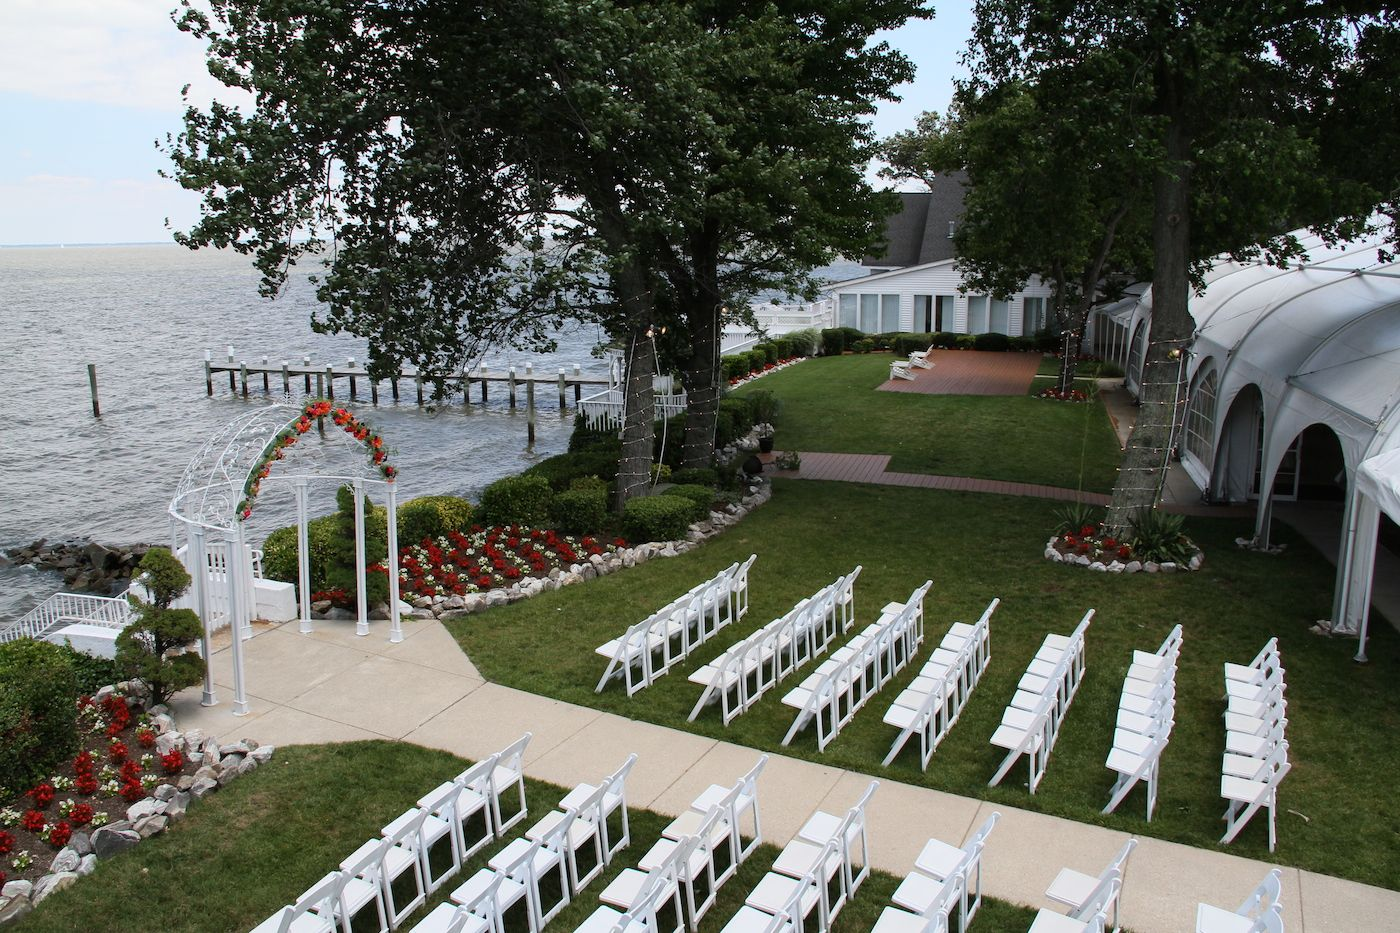 This Is The Preparation For An Outdoor Wedding Held At Celebrations Bay Chesapeake